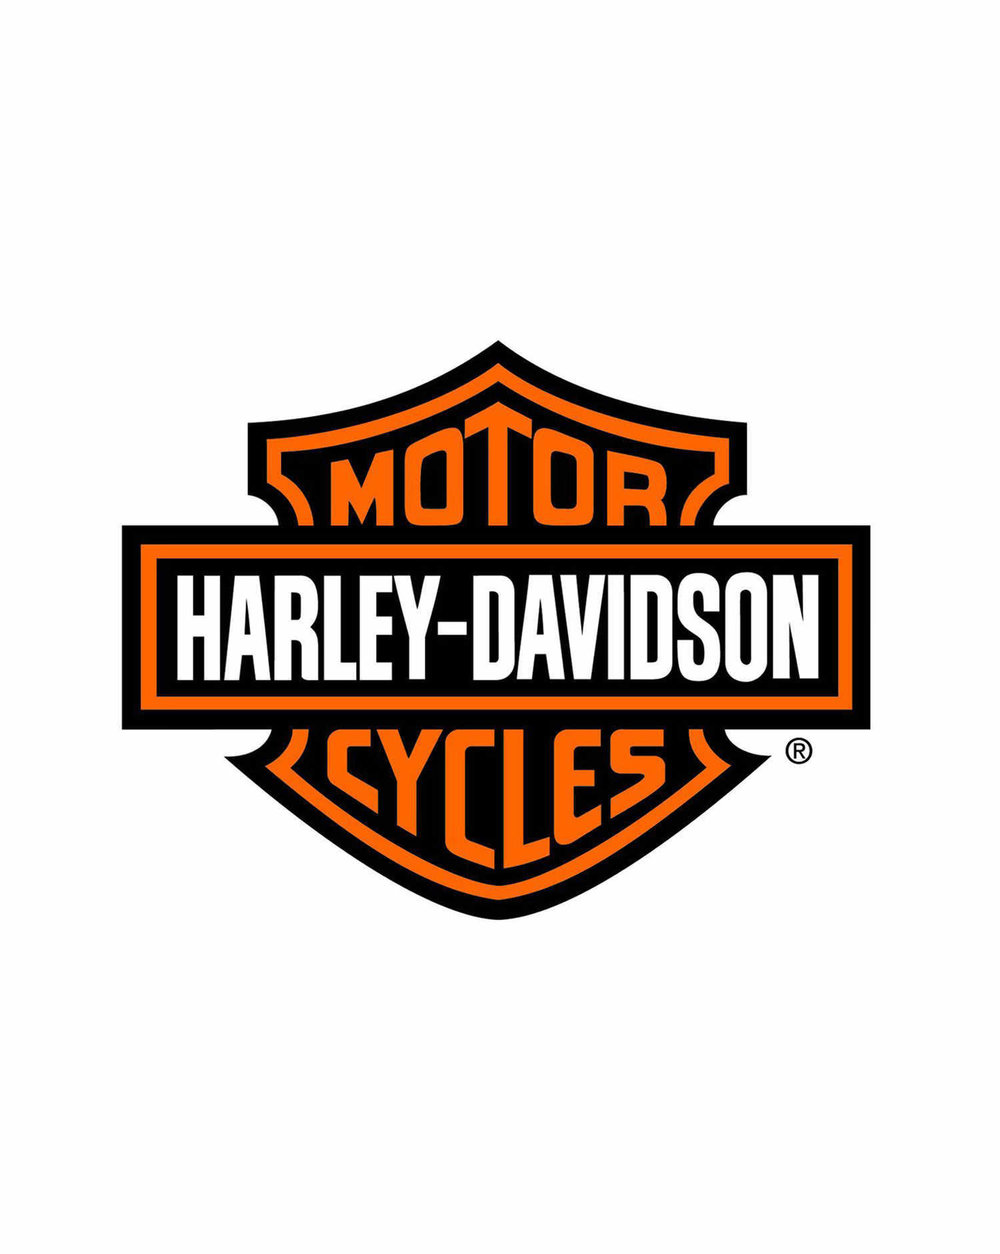 HARLEY-DAVIDSON Mark was commissioned by HARLEY-DAVIDSON to design a collection of men's and women's riding apparel to coordinate with the company's brand image. Specifically designed for the riding enthusiast, the program sold by over 600 Harley Davidson dealerships worldwide.